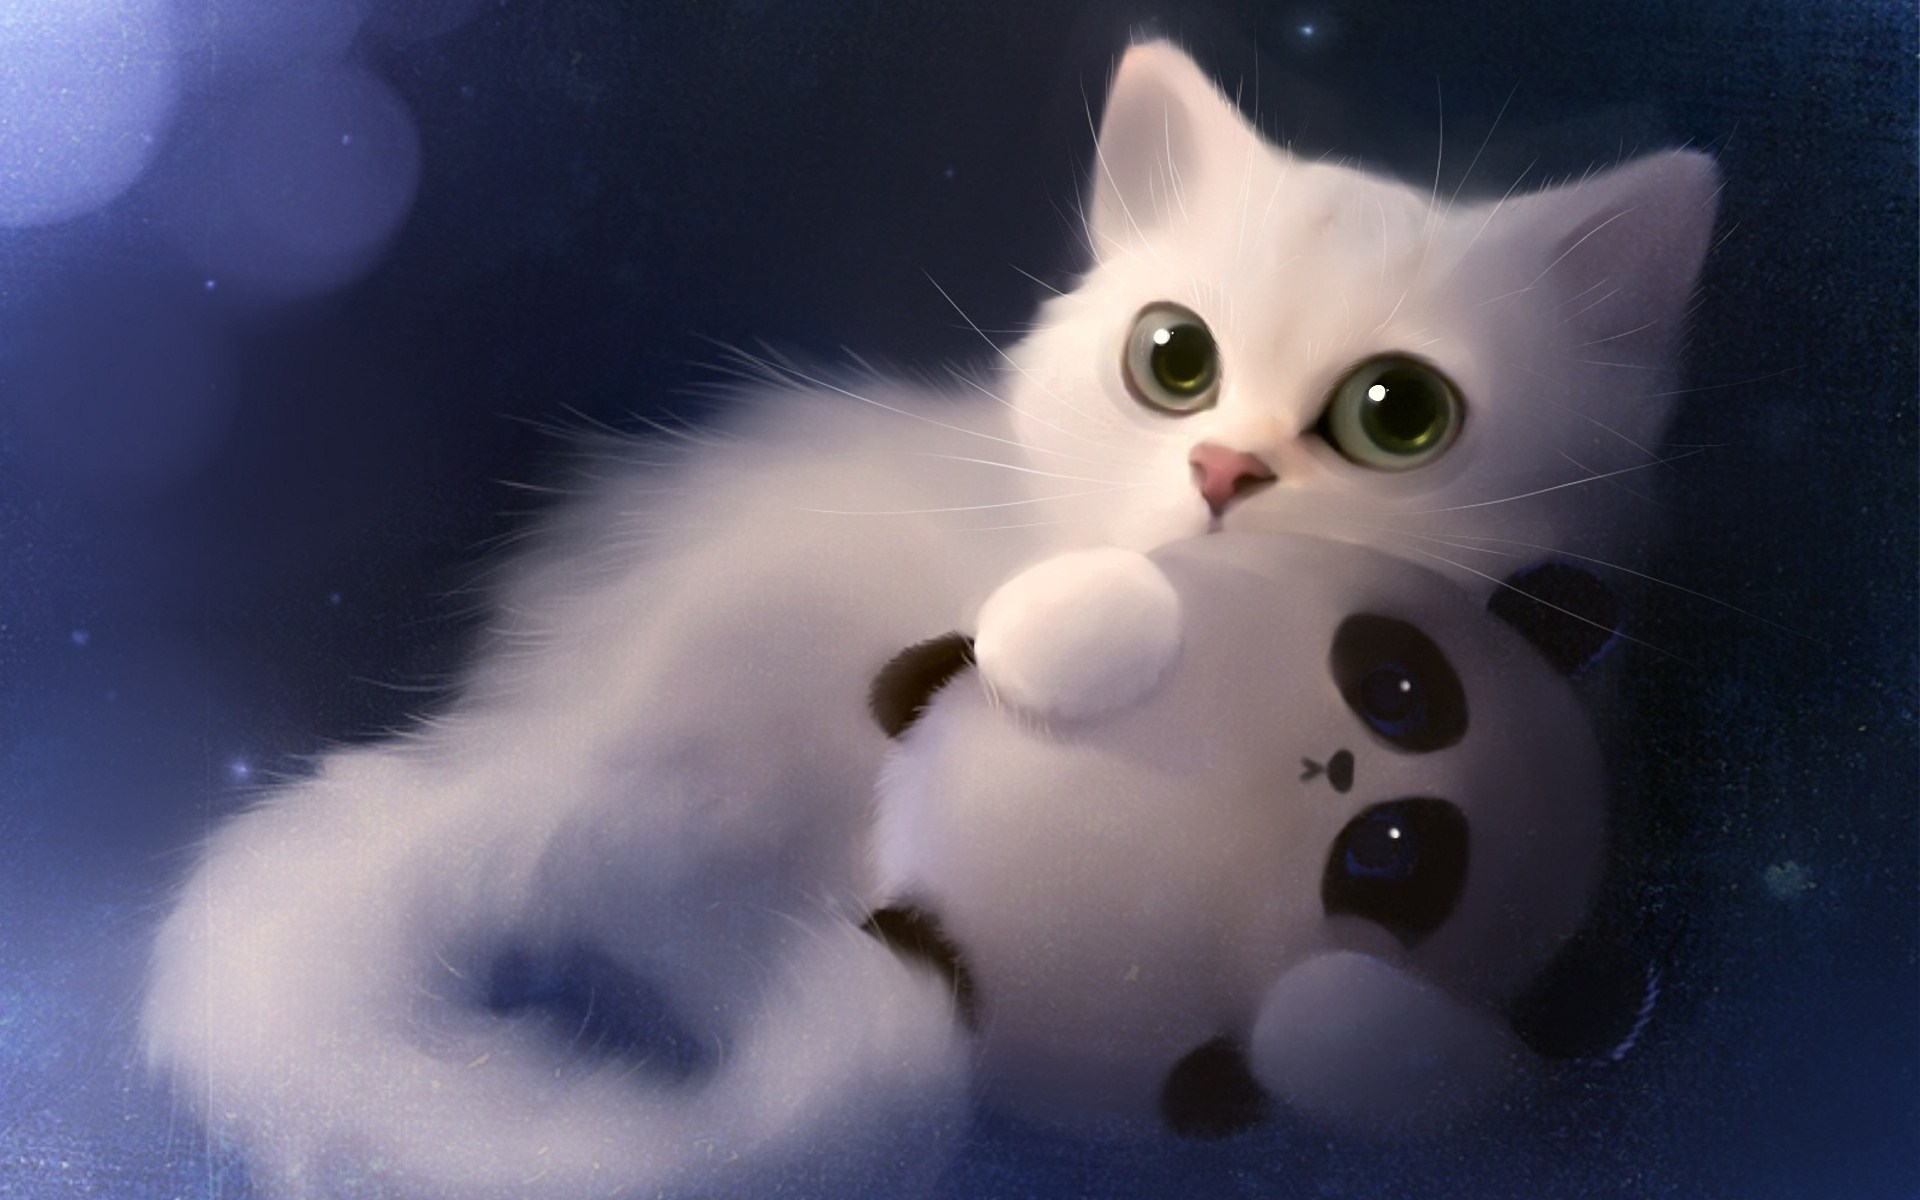 Collection of Cute Backgrounds Hd on HDWallpapers